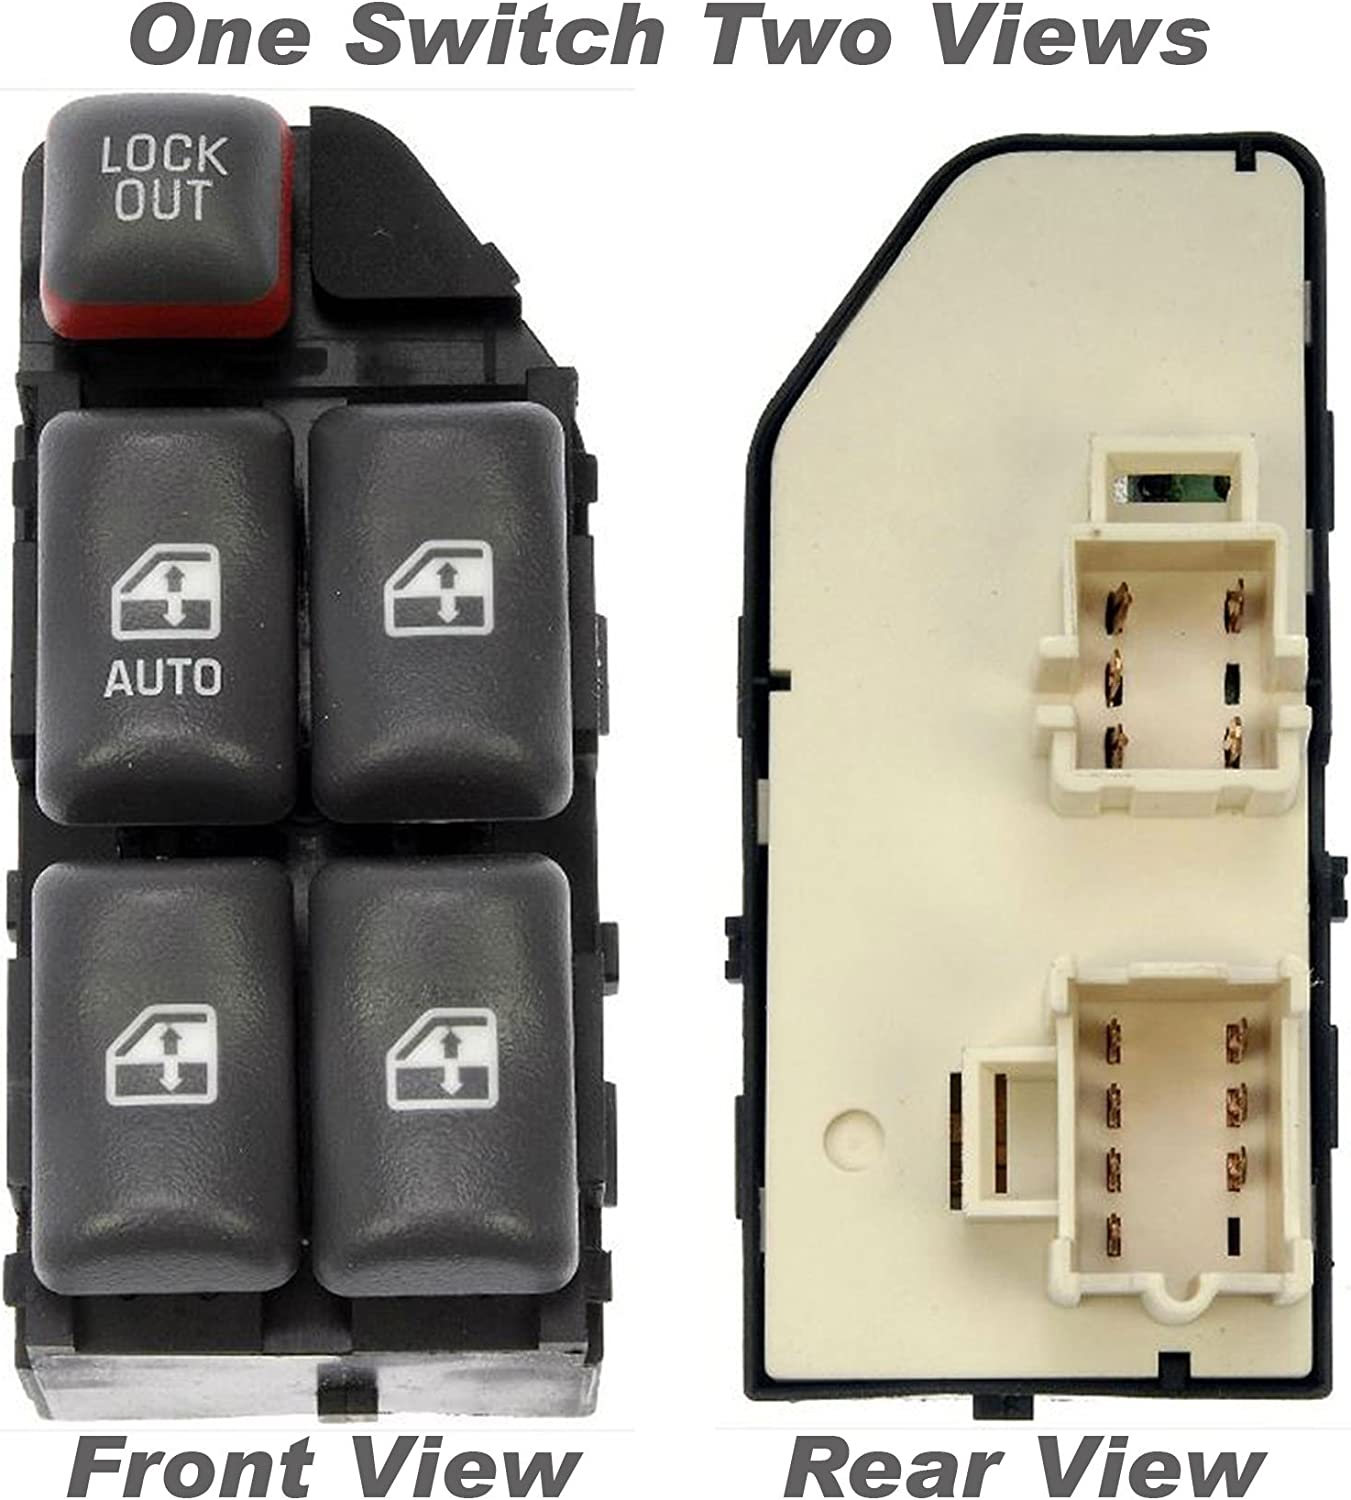 2021 autumn and winter new APDTY 012134 Power Window Left Front - Switch Max 86% OFF